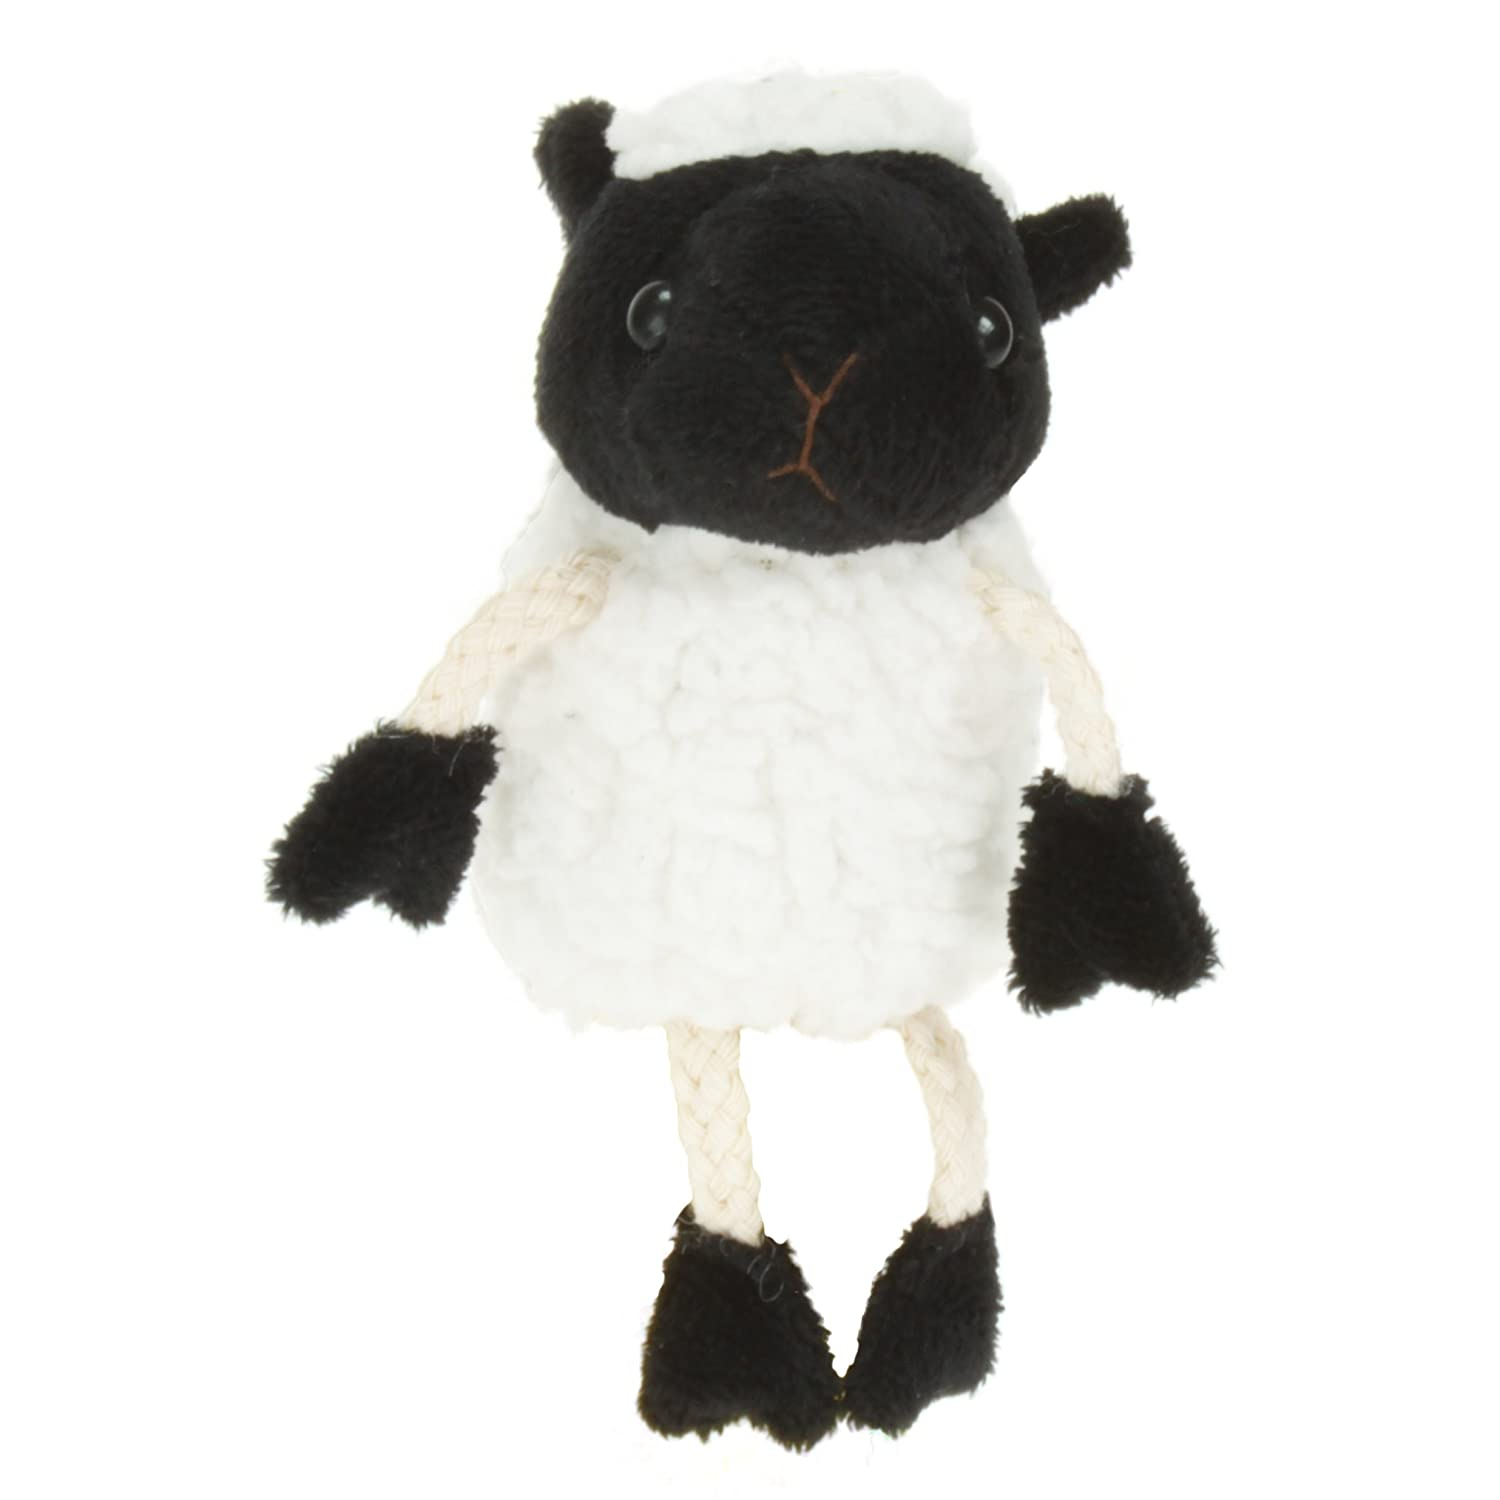 The Puppet Company - Finger Puppets - White Sheep PC020216